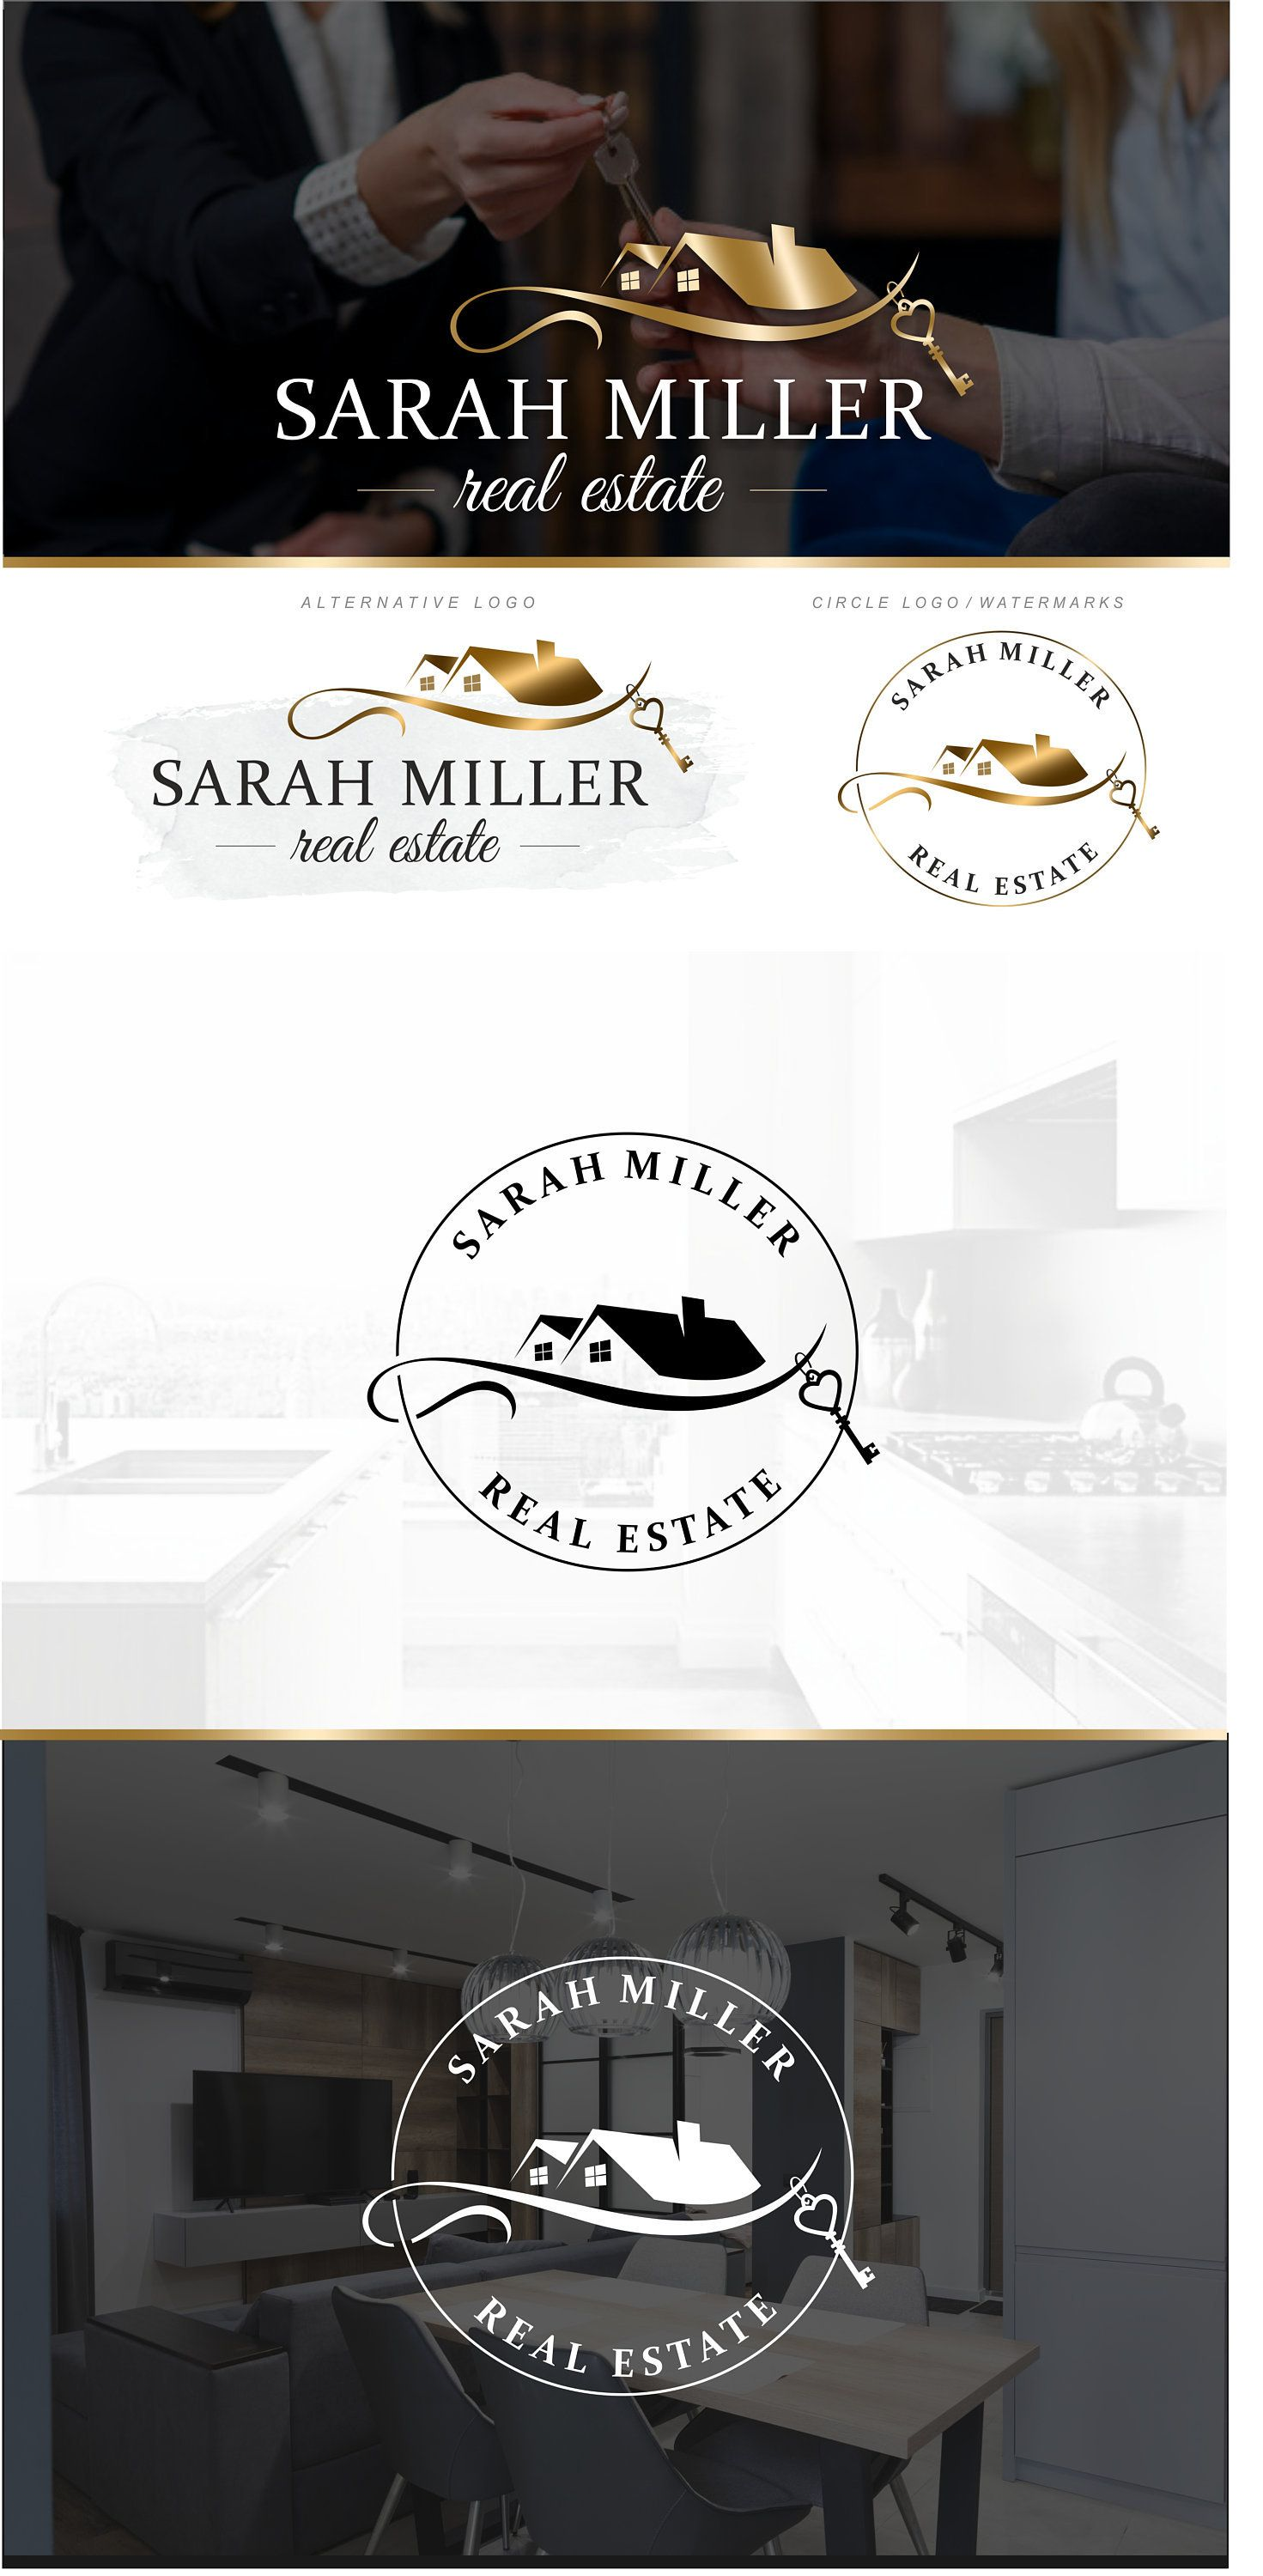 Pin on Realtor and Real estate logo designs